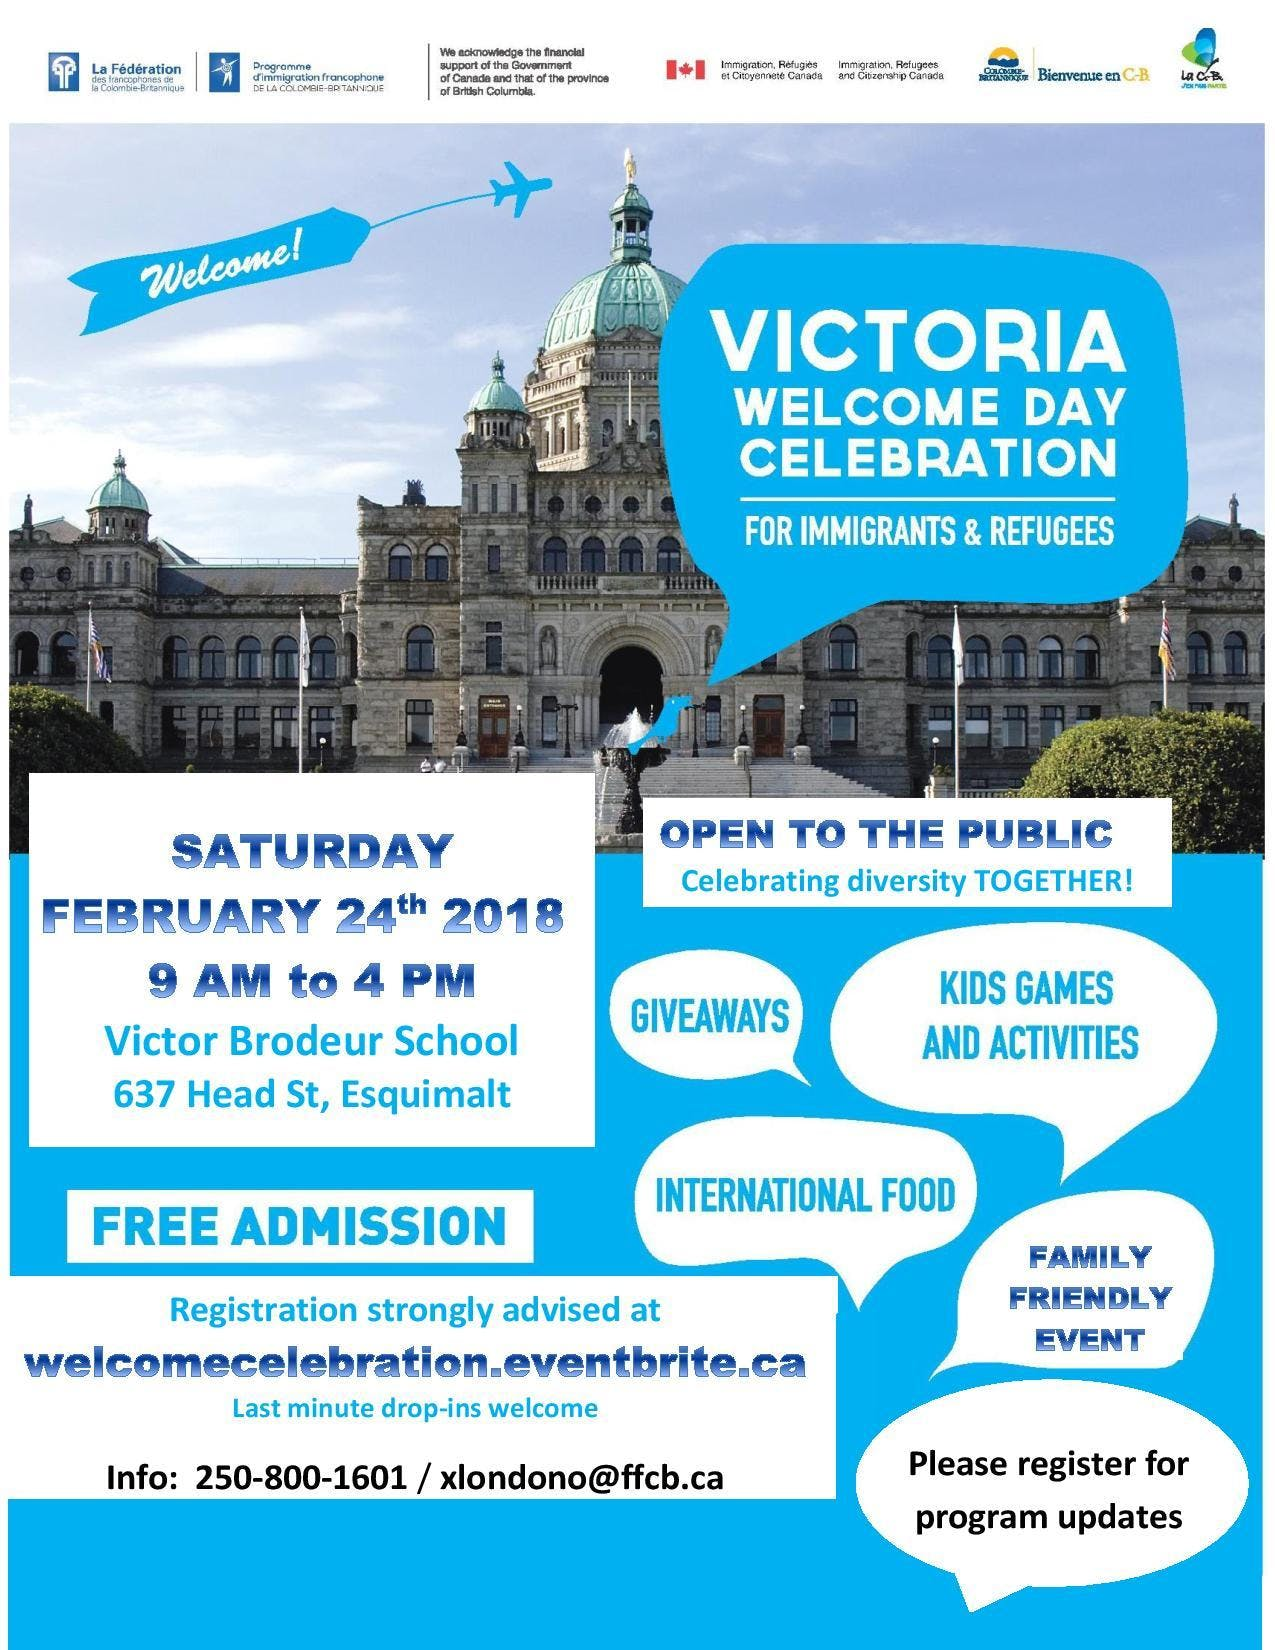 Welcome Day Celebration for Immigrants & Refugees